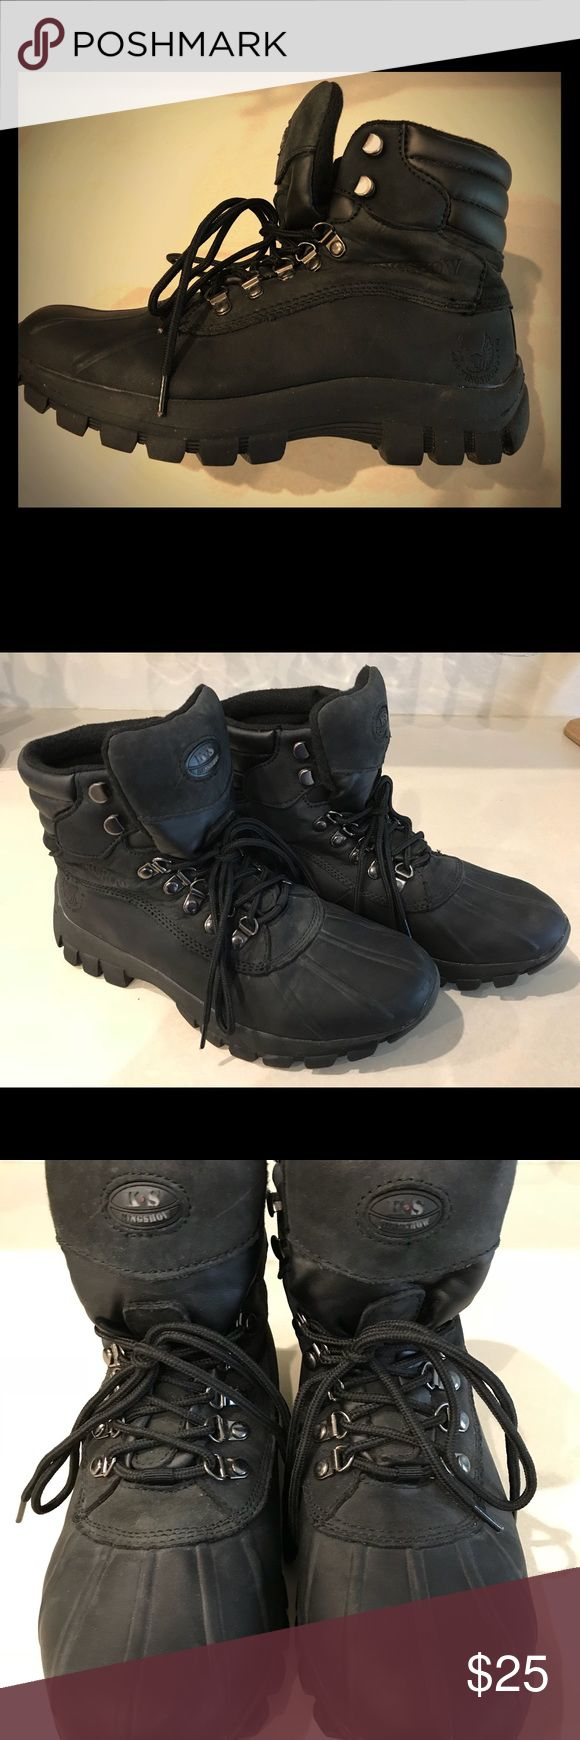 Rubber Sole Waterproof Snow Boots Water Proof Men's Winter Snow Boots. Size 8.5 US In perfect condition. Only worn once. KingShow Shoes Winter & Rain Boots